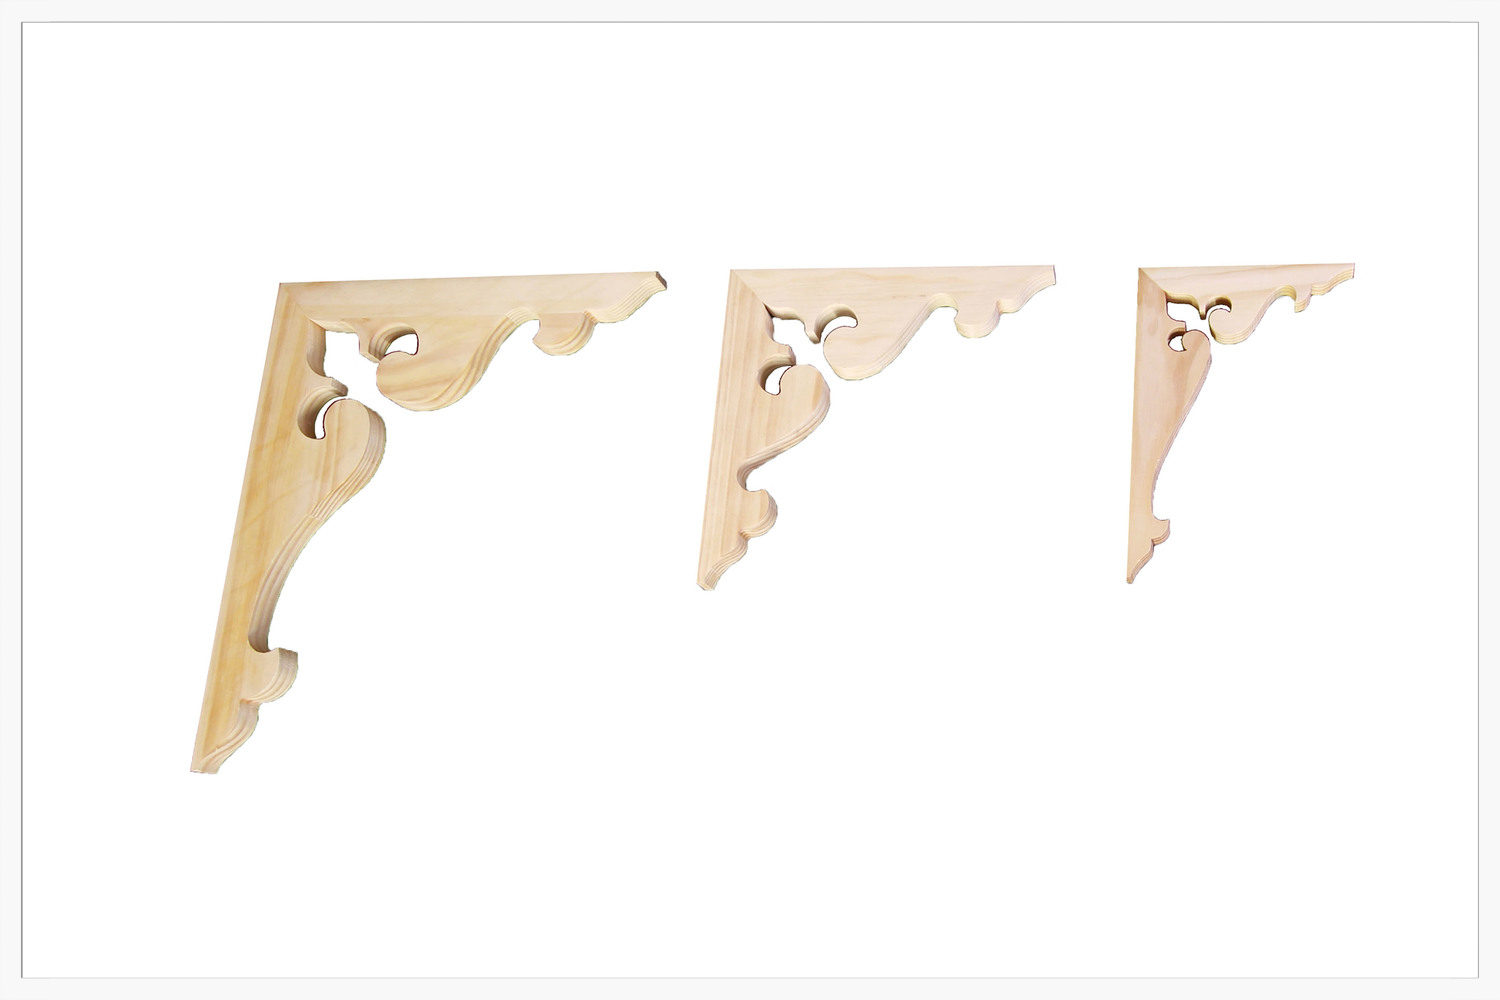 Corner Brackets (3 sizes)    Product Code:  CB-6, CB-6S, CB6ES  Thickness:  32  Dimensions:  440 x 530 mm, 325 x 325 mm, 310 x 200 mm RESPECTIVELY